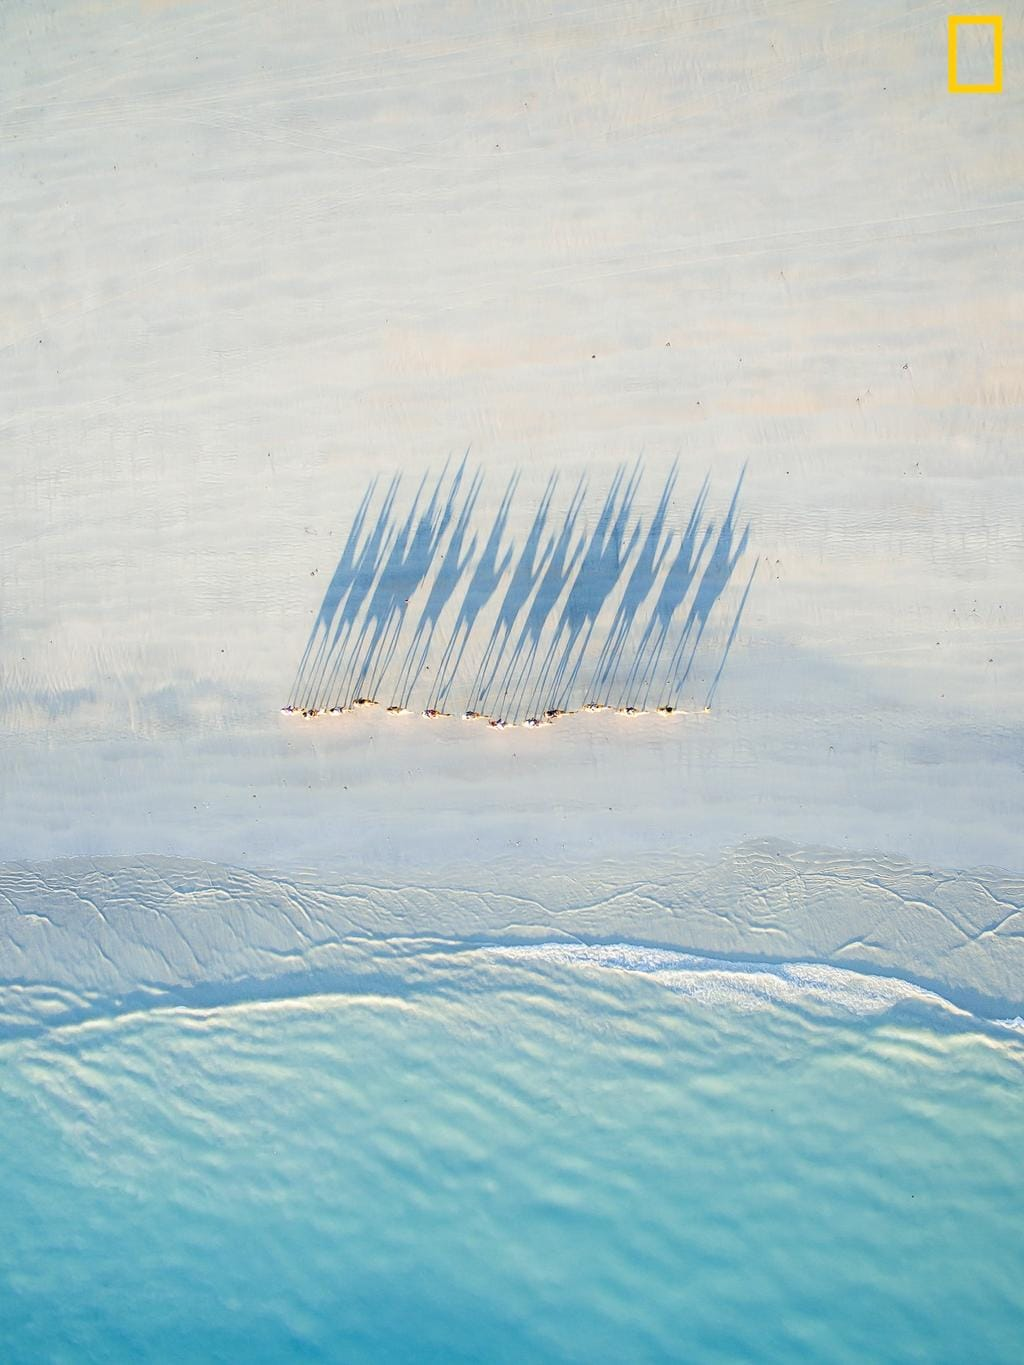 Photo by Todd Kennedy / National Geographic Nature Photographer of the Year contest Cable Beach Camel Caravan A bird's eye view of a caravan of camels walking along Cable beach at sunset.